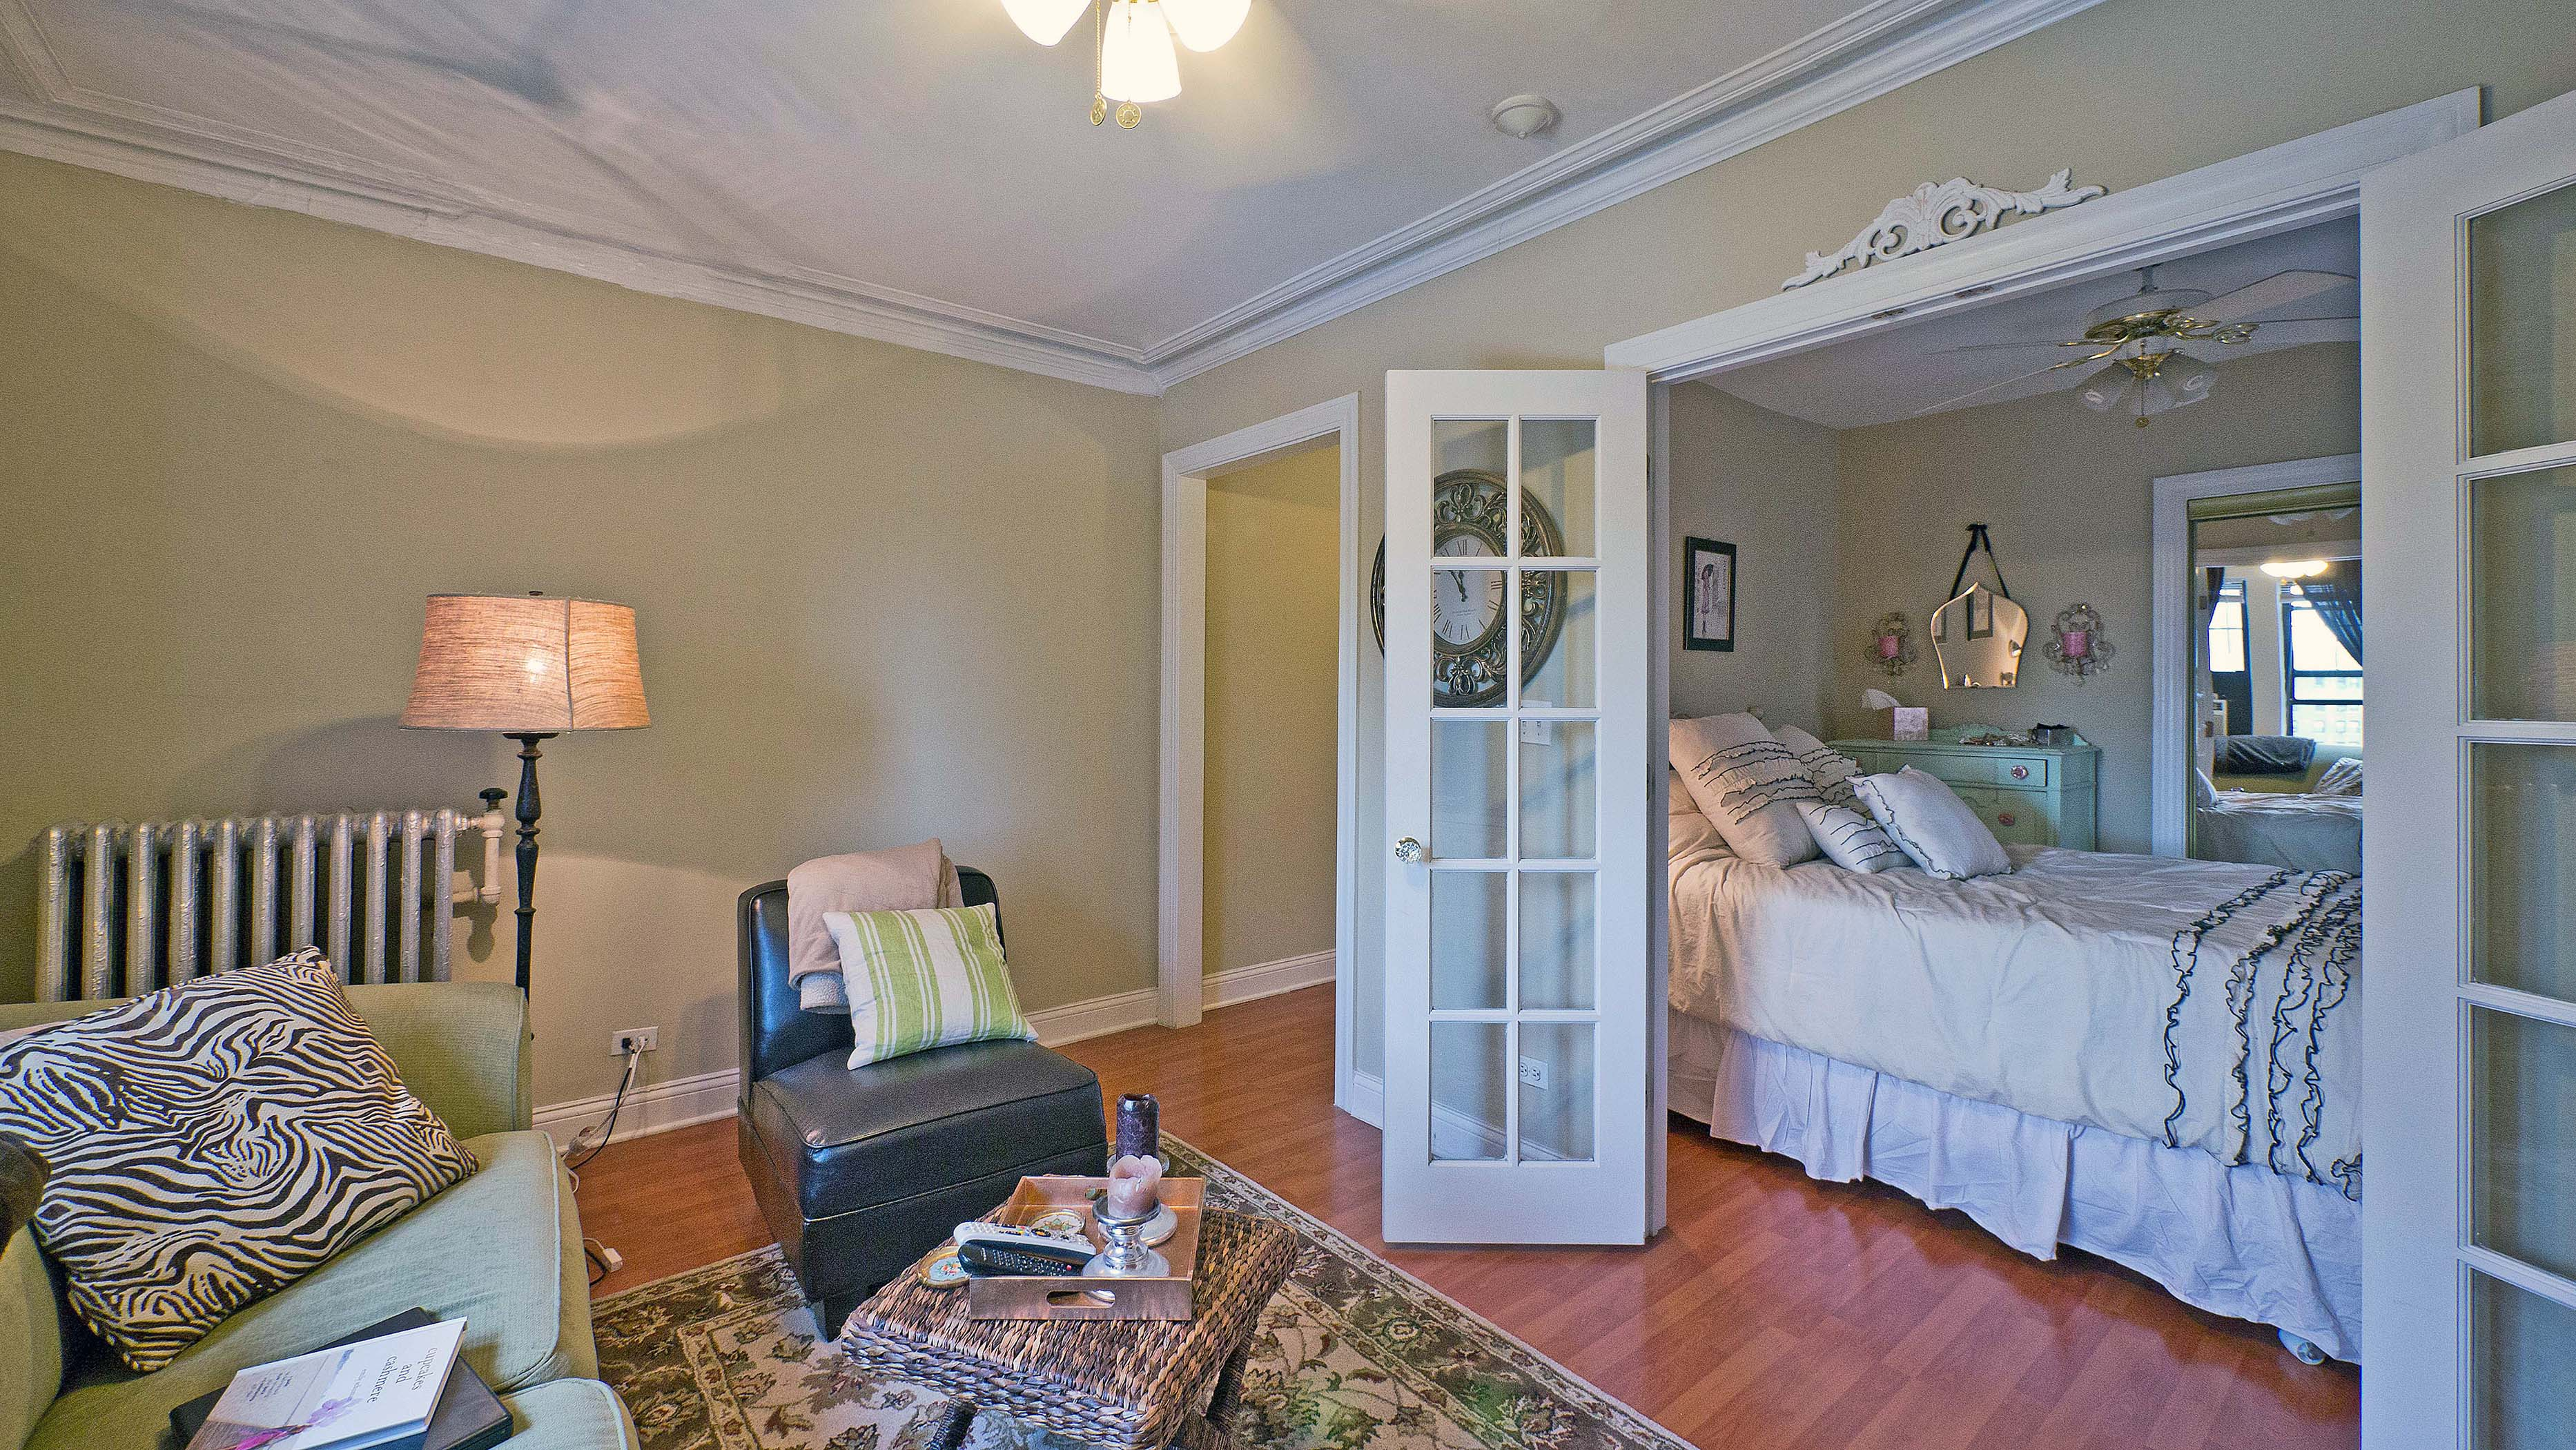 mount sale this walk boasts min suite to and townhouse in backing condos park university lincoln beautiful only open location for royal pm downtown superb minute house calgary october a